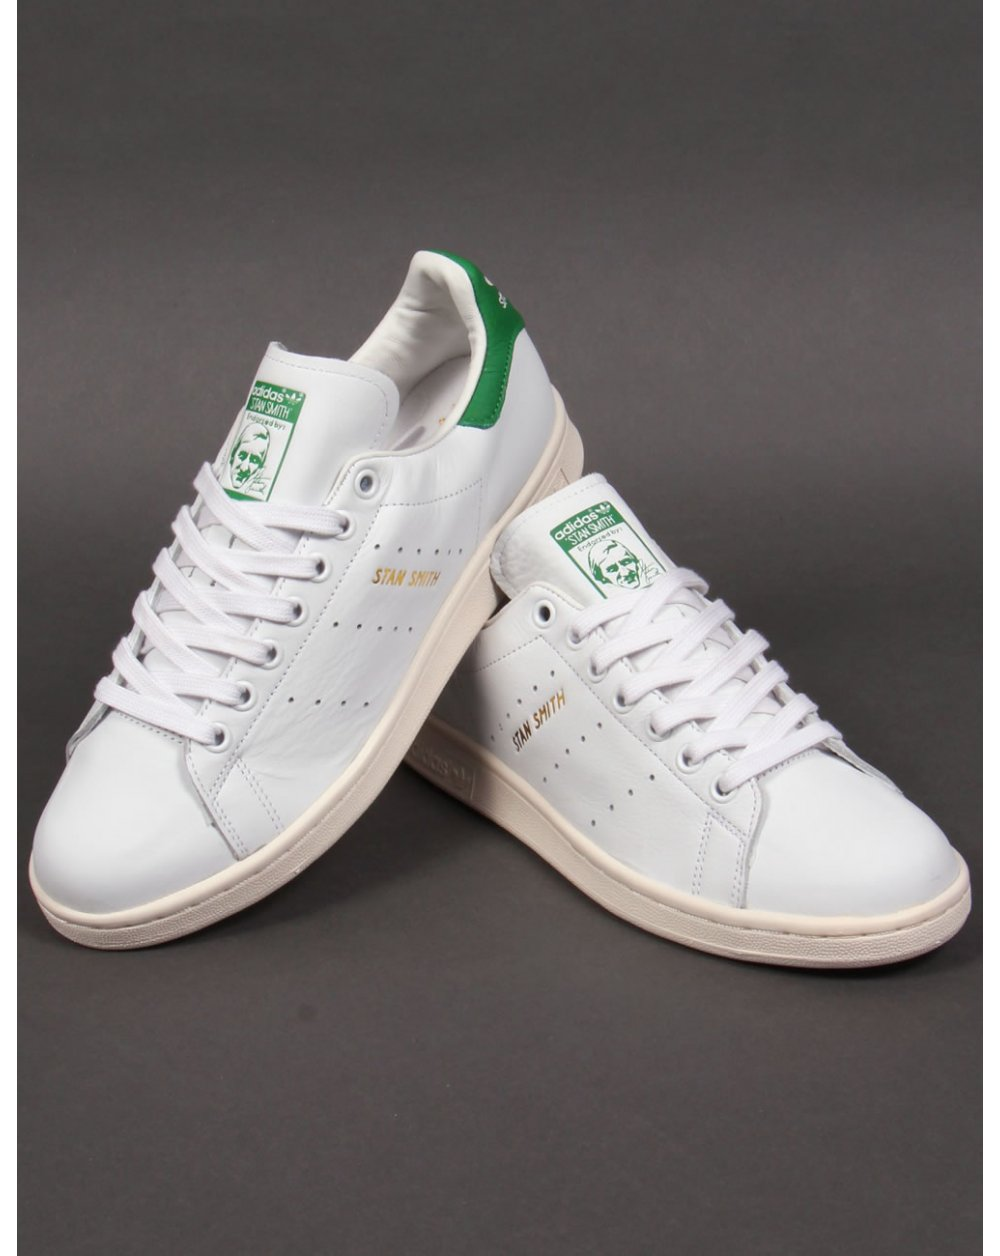 adidas stan smith trainers white green gold originals mens shoes. Black Bedroom Furniture Sets. Home Design Ideas